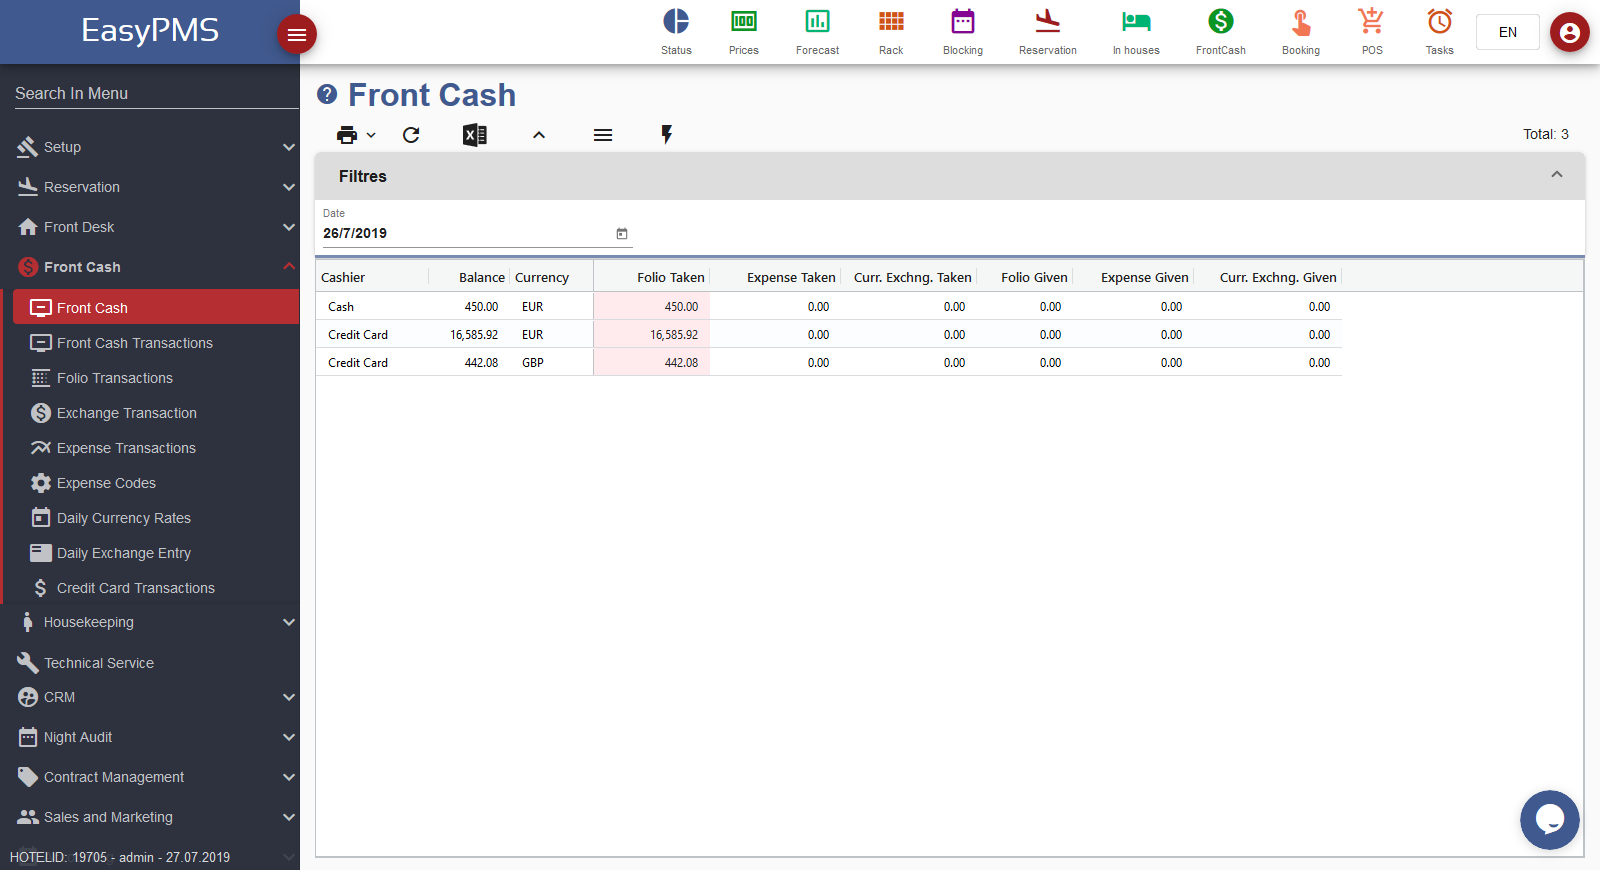 easypms hotel software front cash